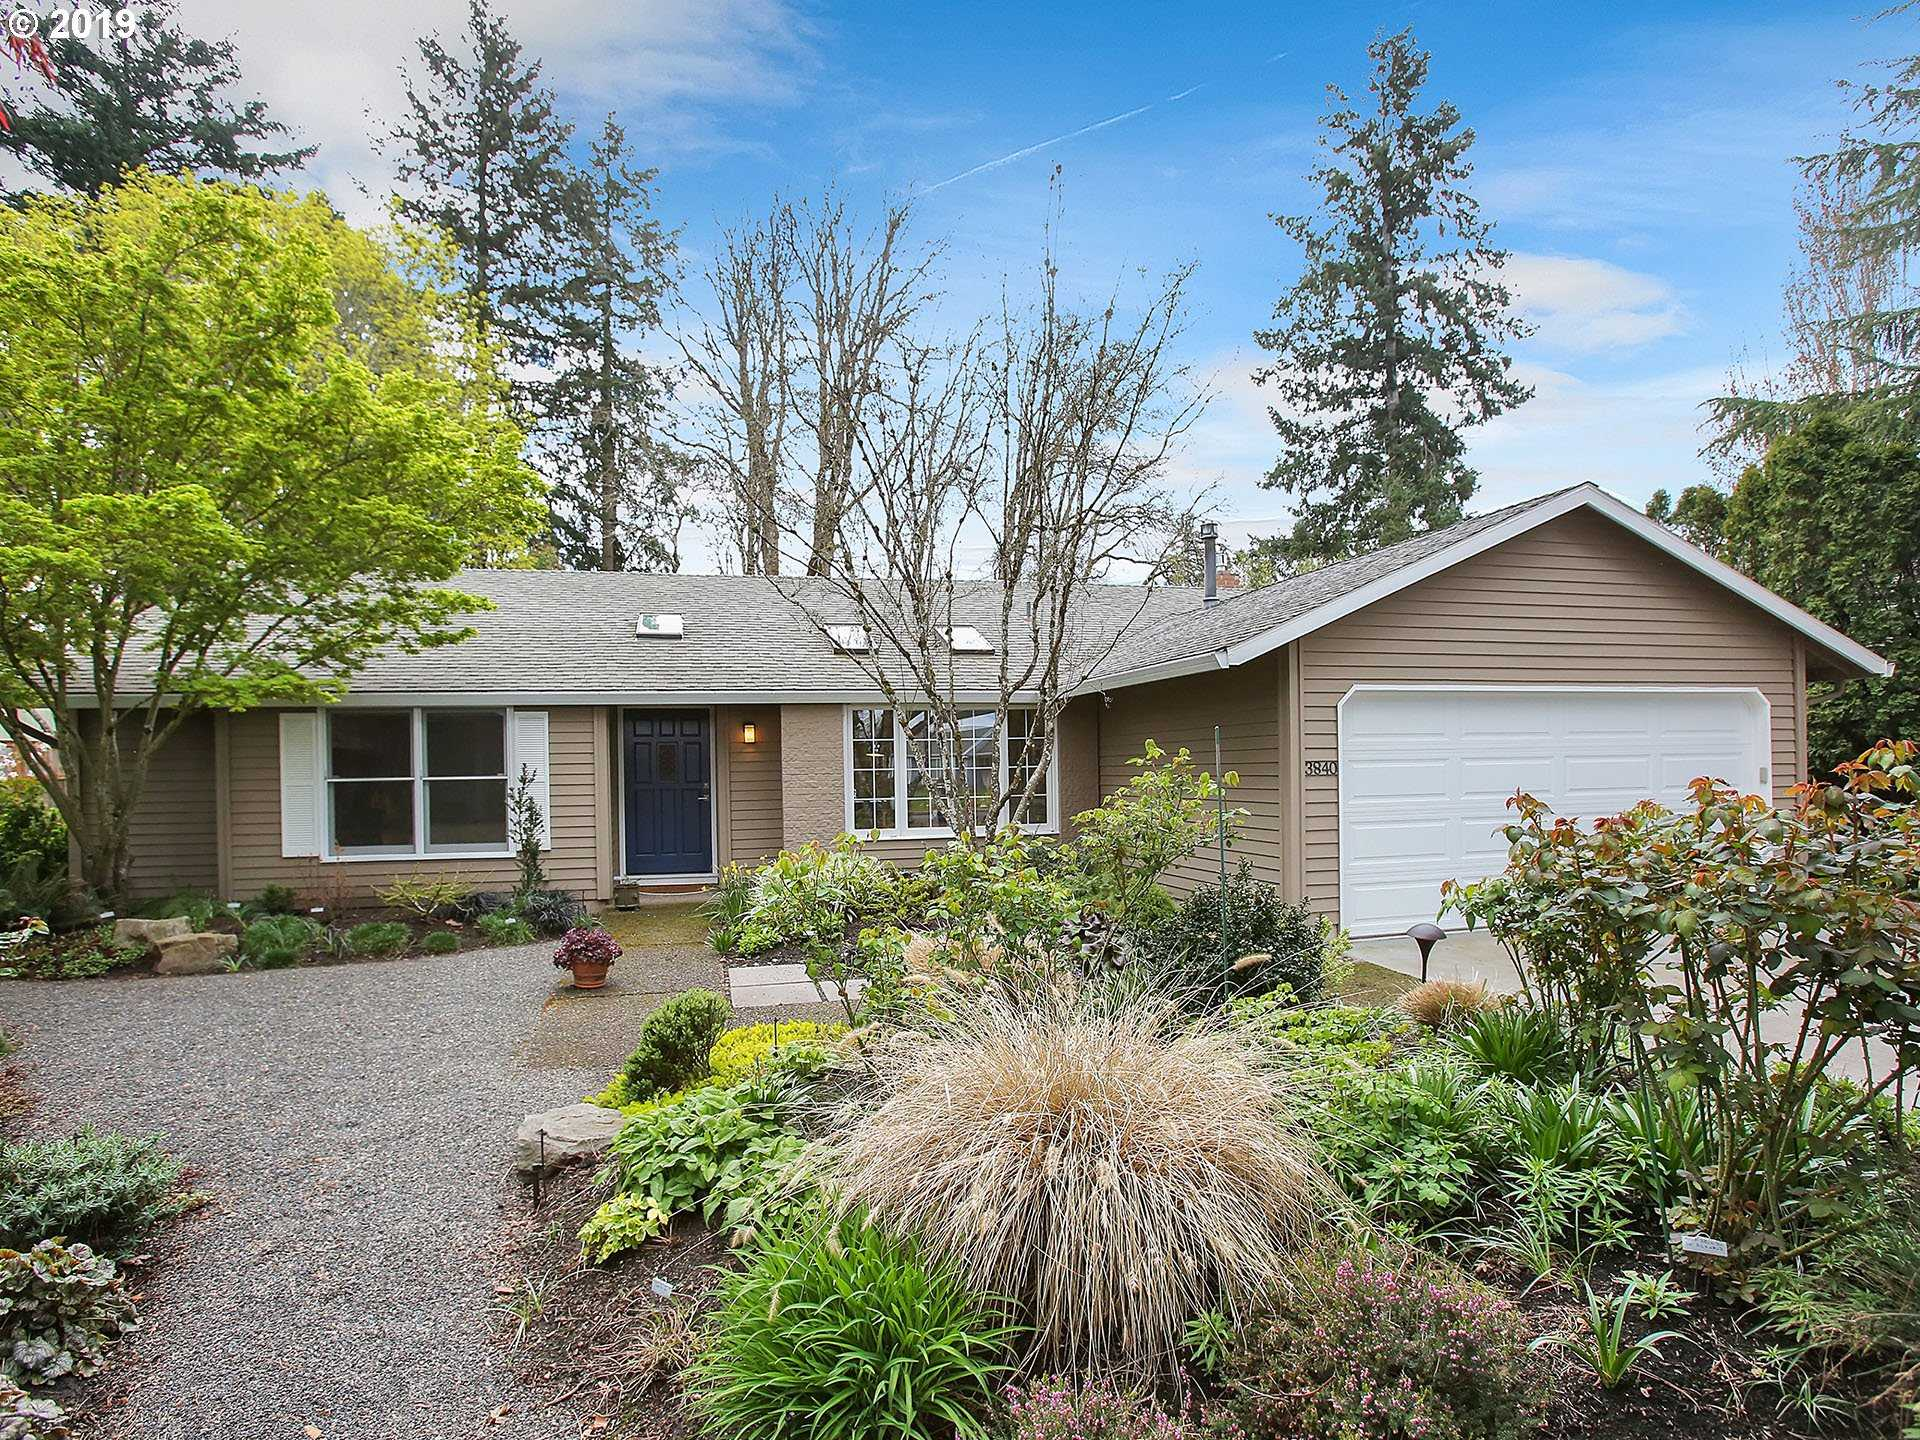 $550,000 - 4Br/2Ba -  for Sale in Bethany/somerset Meadows, Beaverton